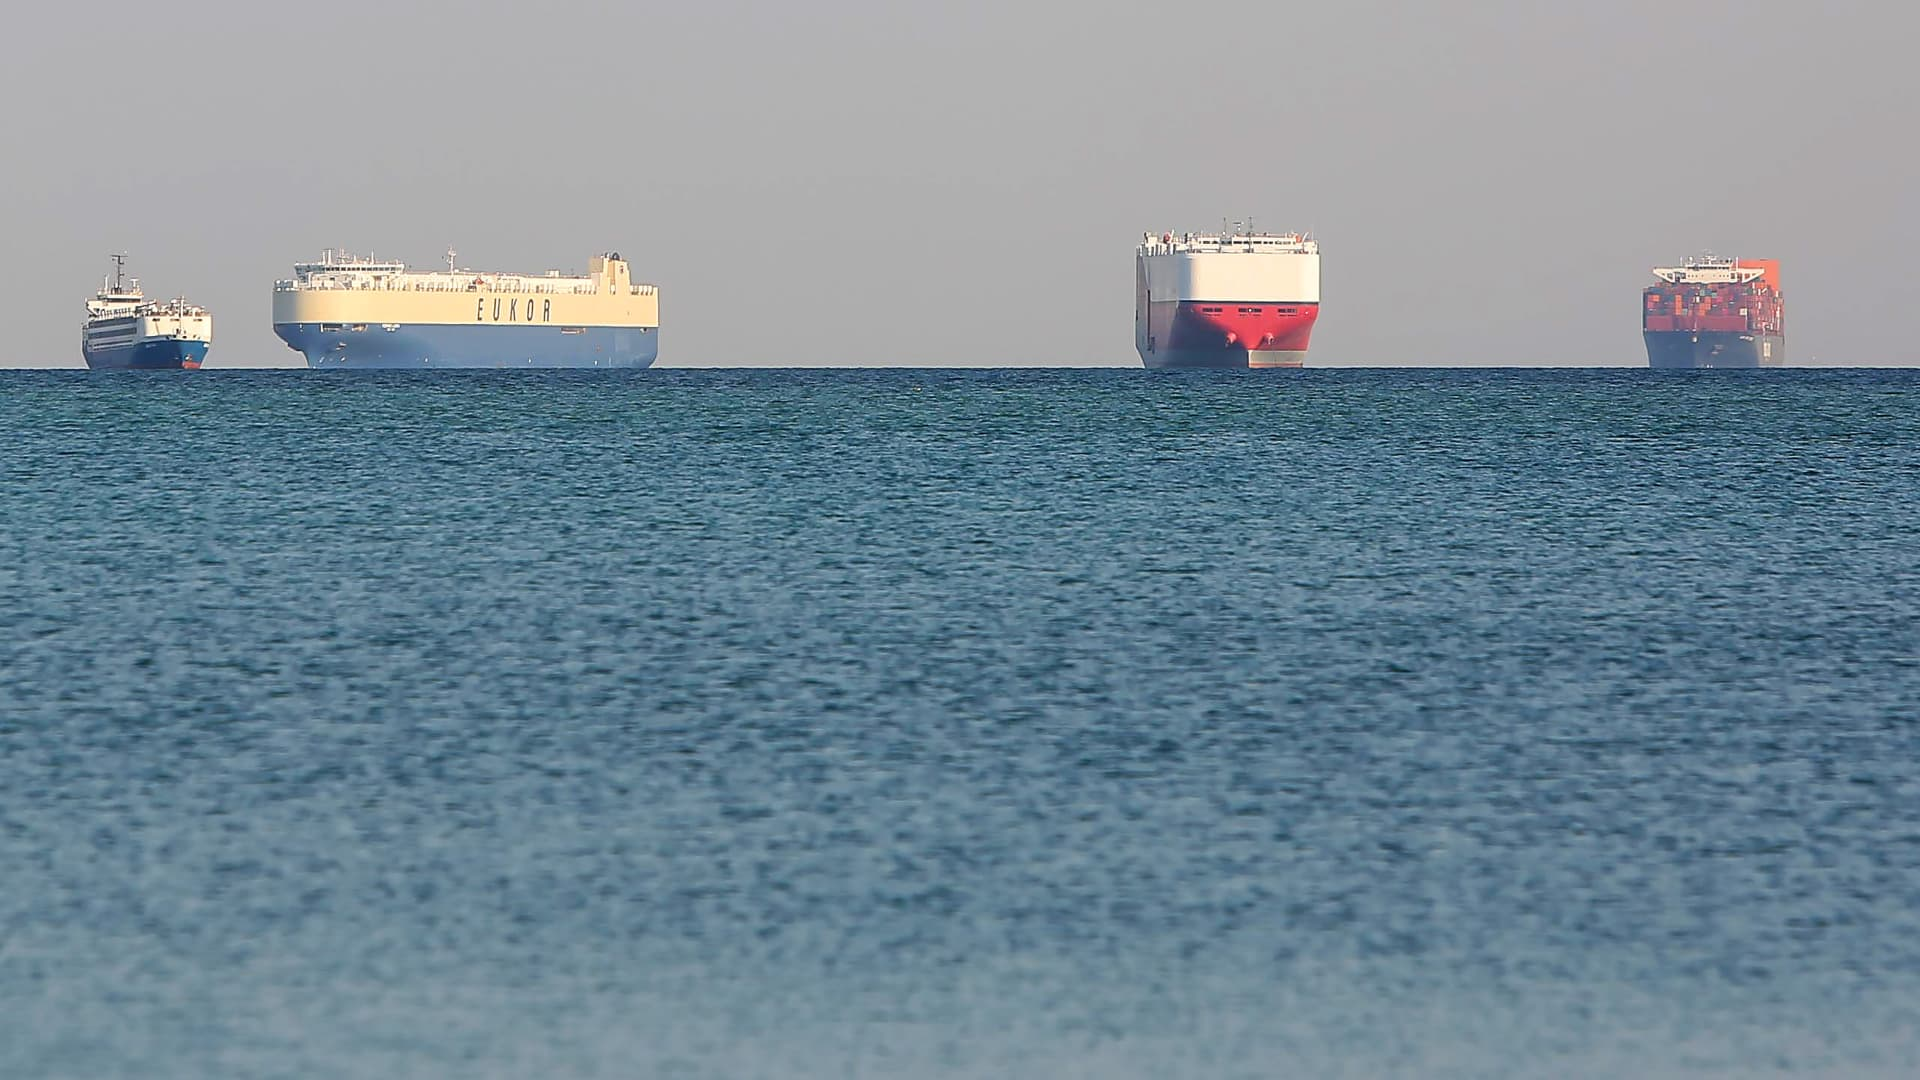 Commercial cargo and container ships ride anchor while waiting to transit the Suez Canal in Ismailia, Egypt, on Thursday, March 25, 2021.